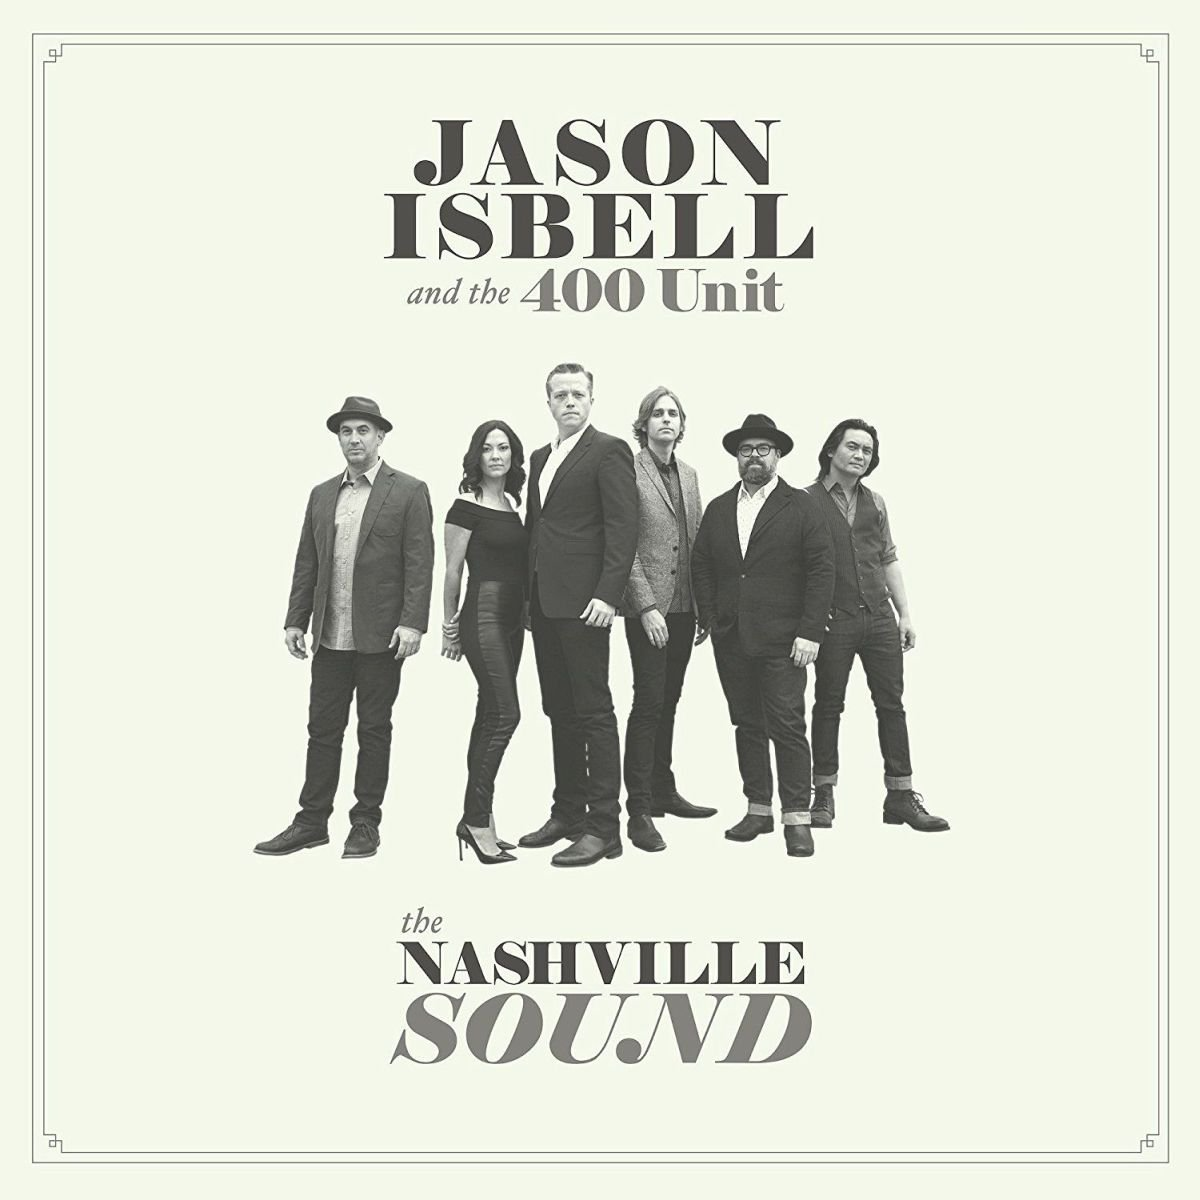 Jason Isbell and the 400 Unit, The Nashville Sound | Album Review